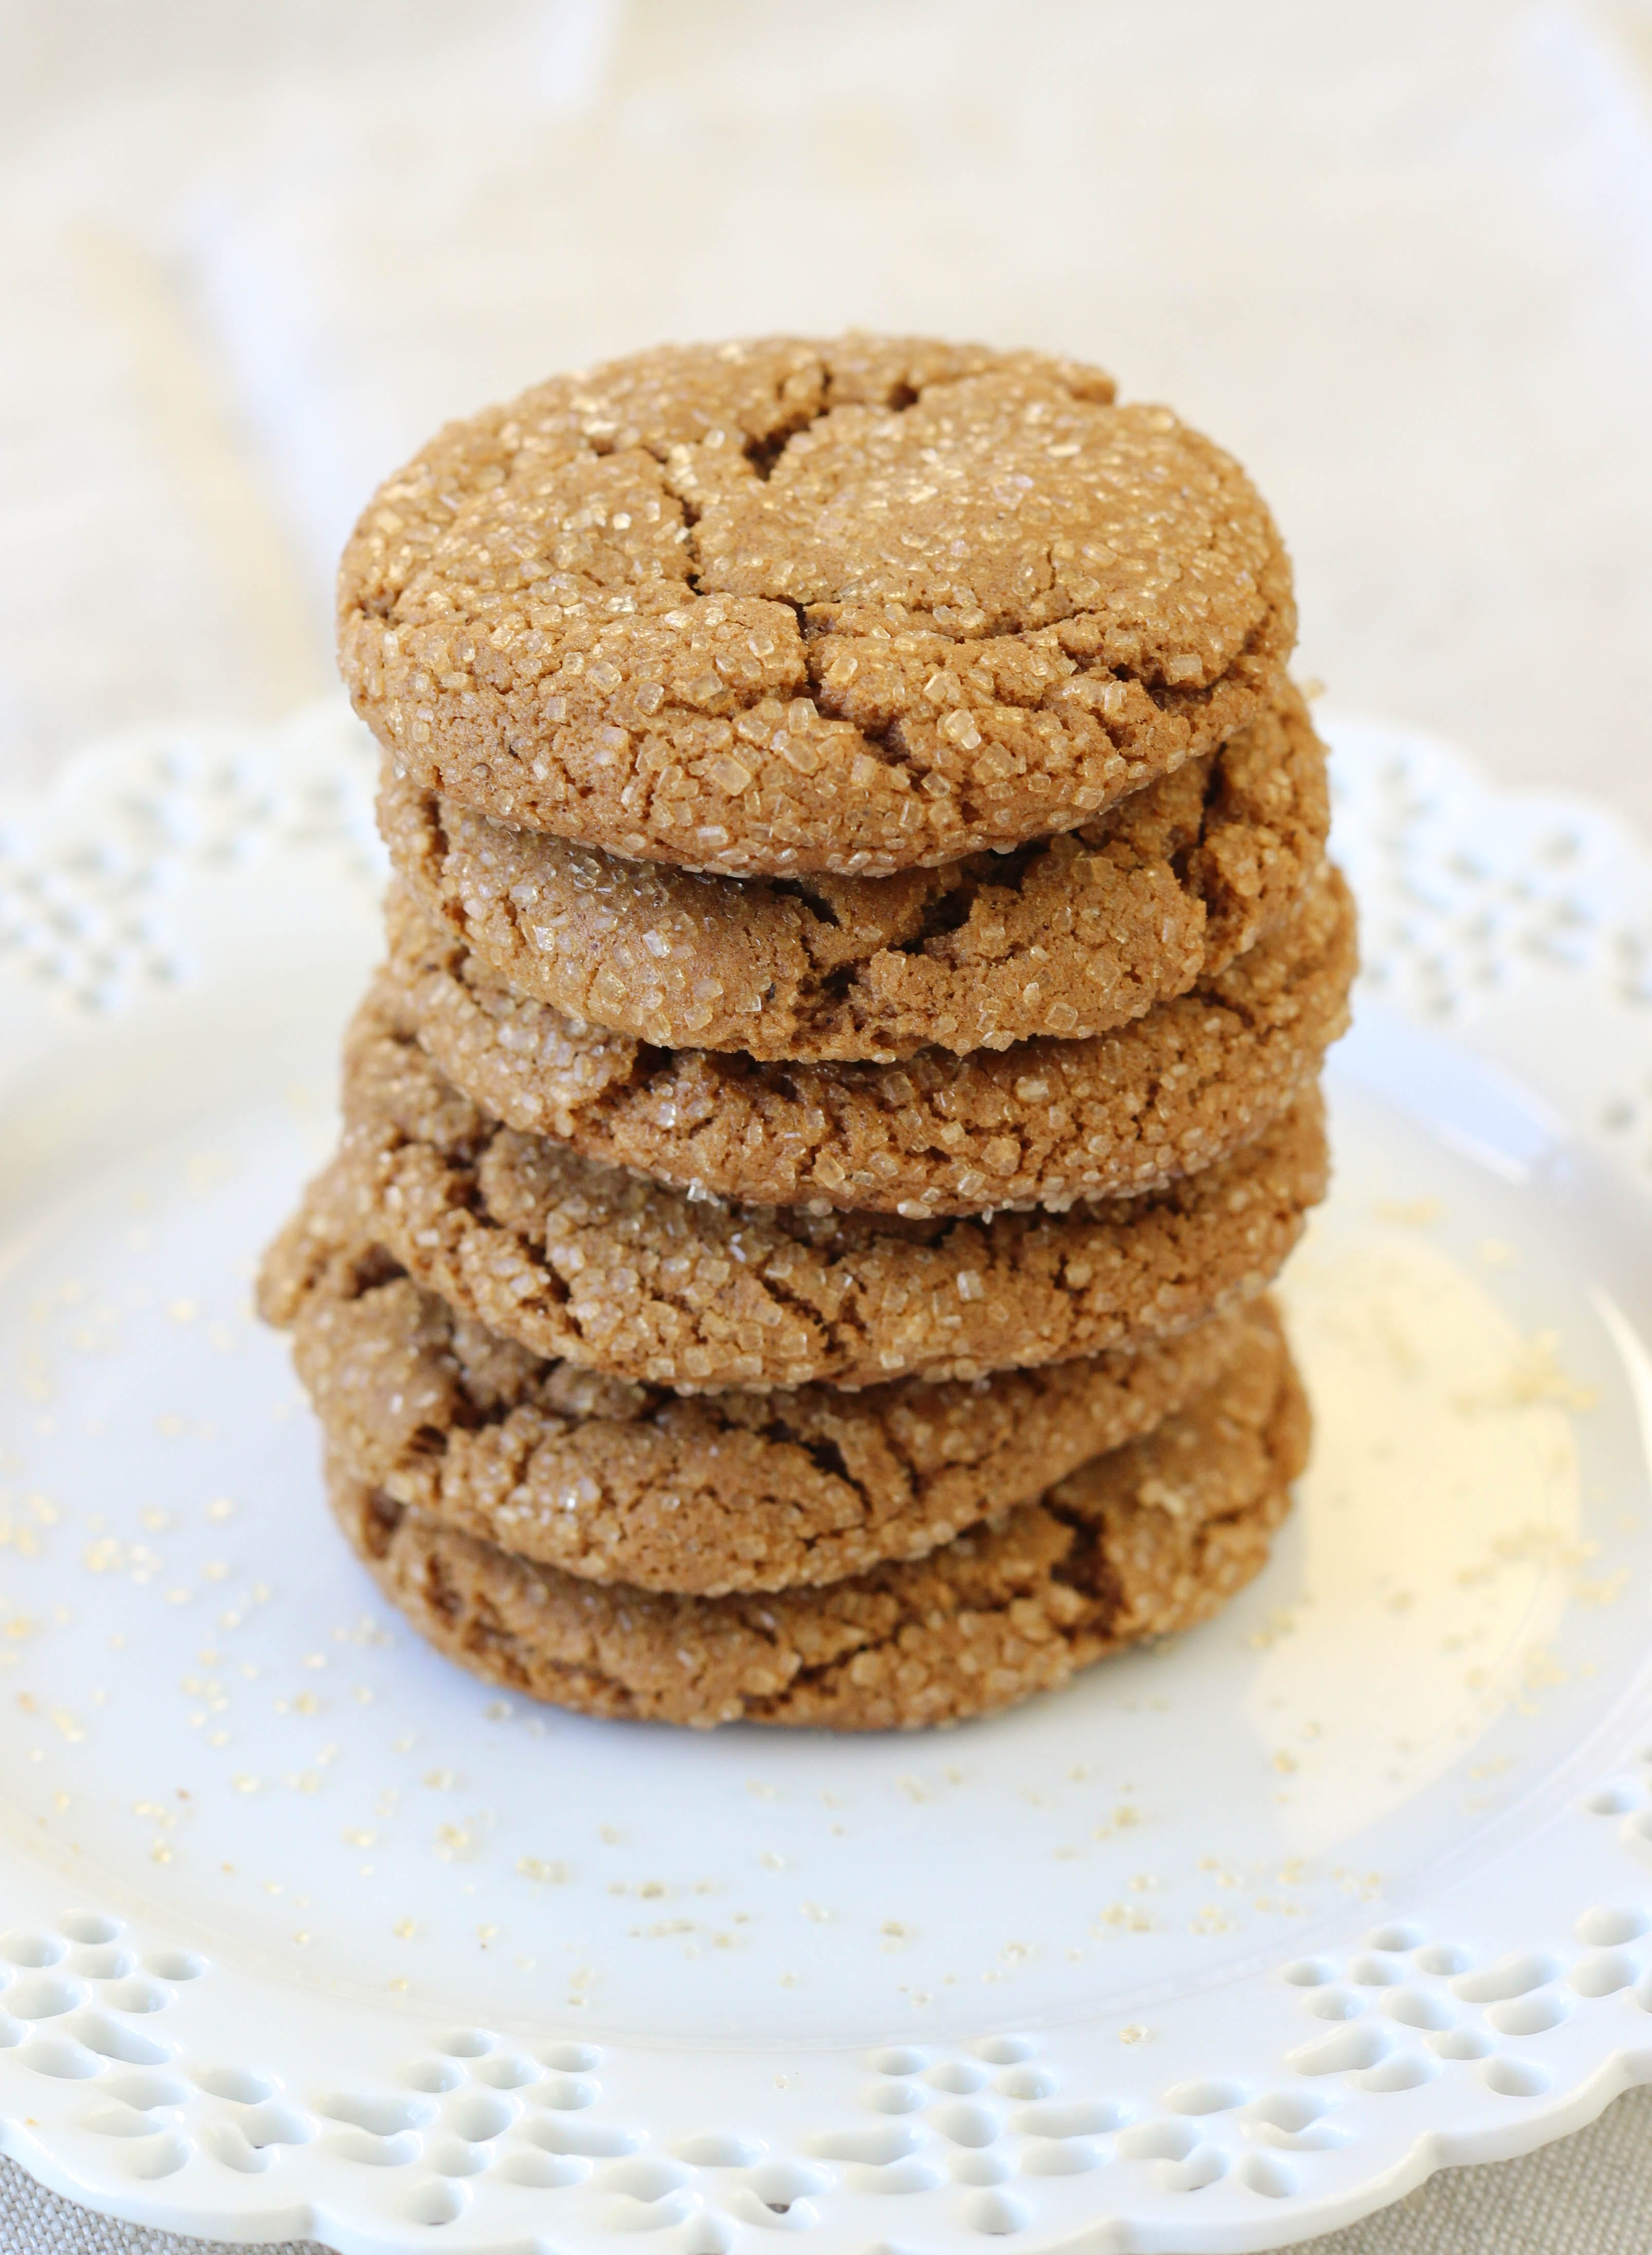 ... mood for Molasses Spice Cookies hit, who can resist? Not this one